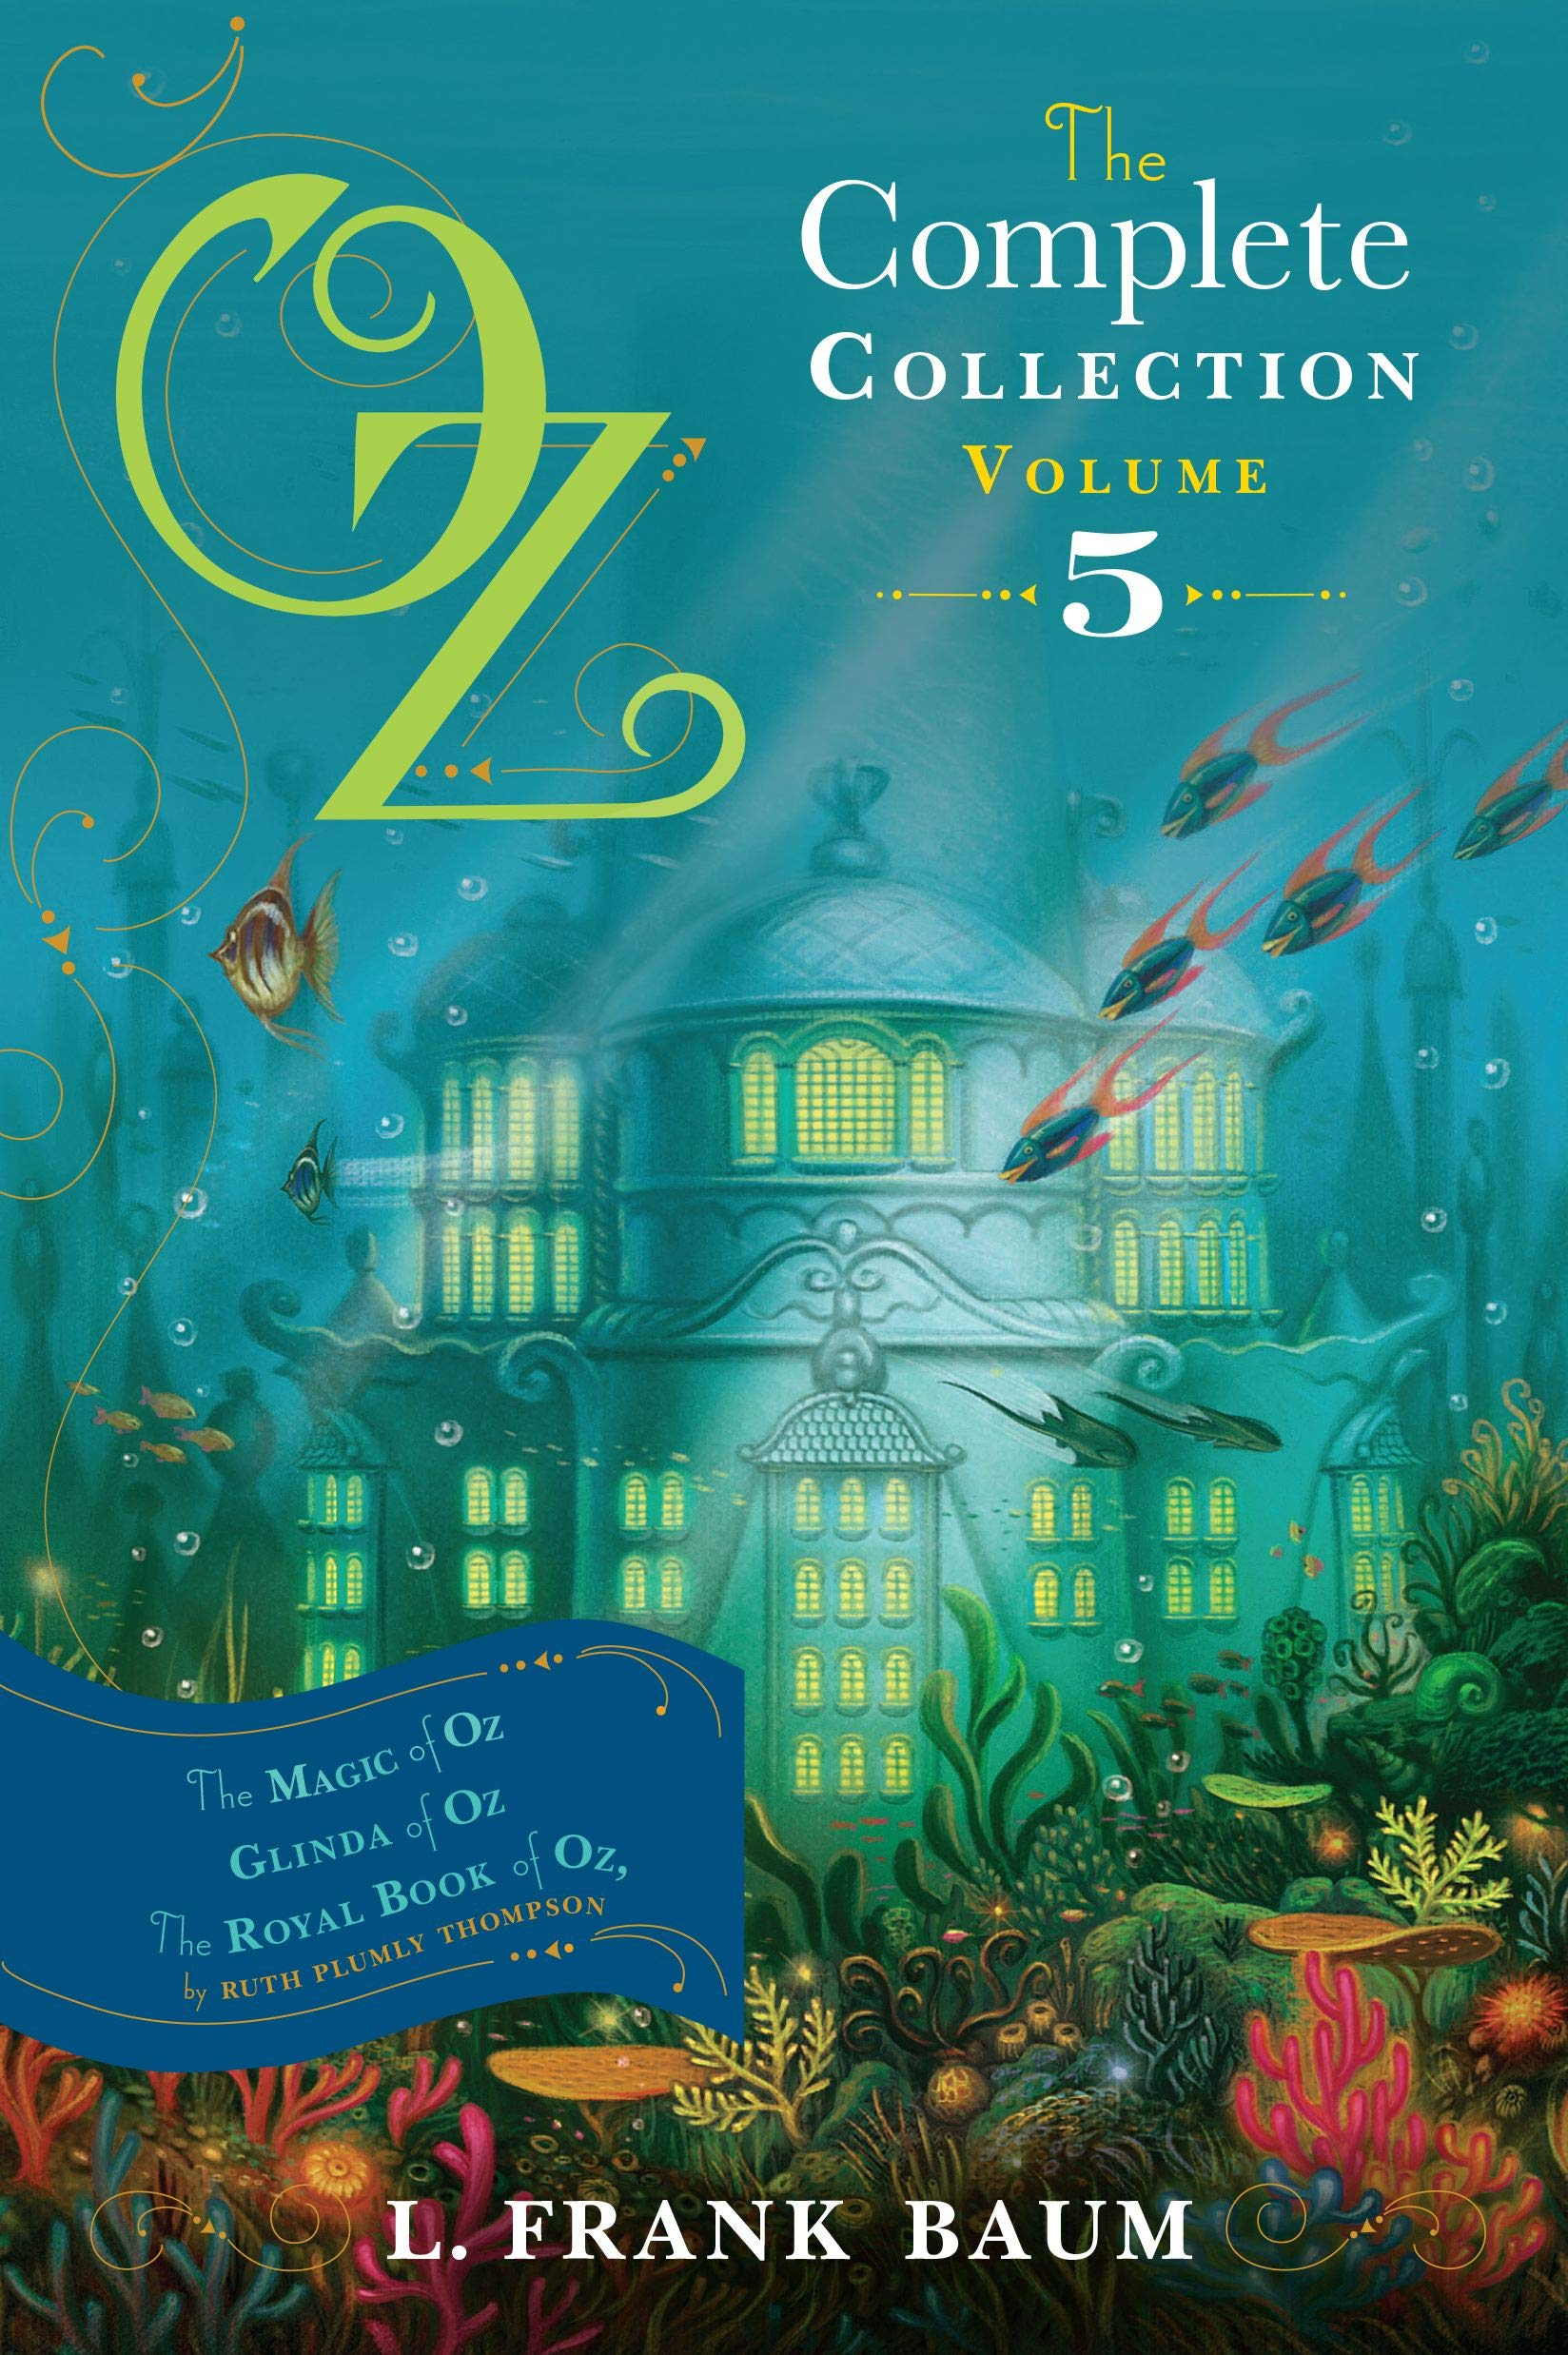 Amazon Fr Oz The Complete Collection Volume 5 The Magic Of Oz Glinda Of Oz The Royal Book Of Oz Volume 5 Baum L Frank Thompson Ruth Plumly Livres